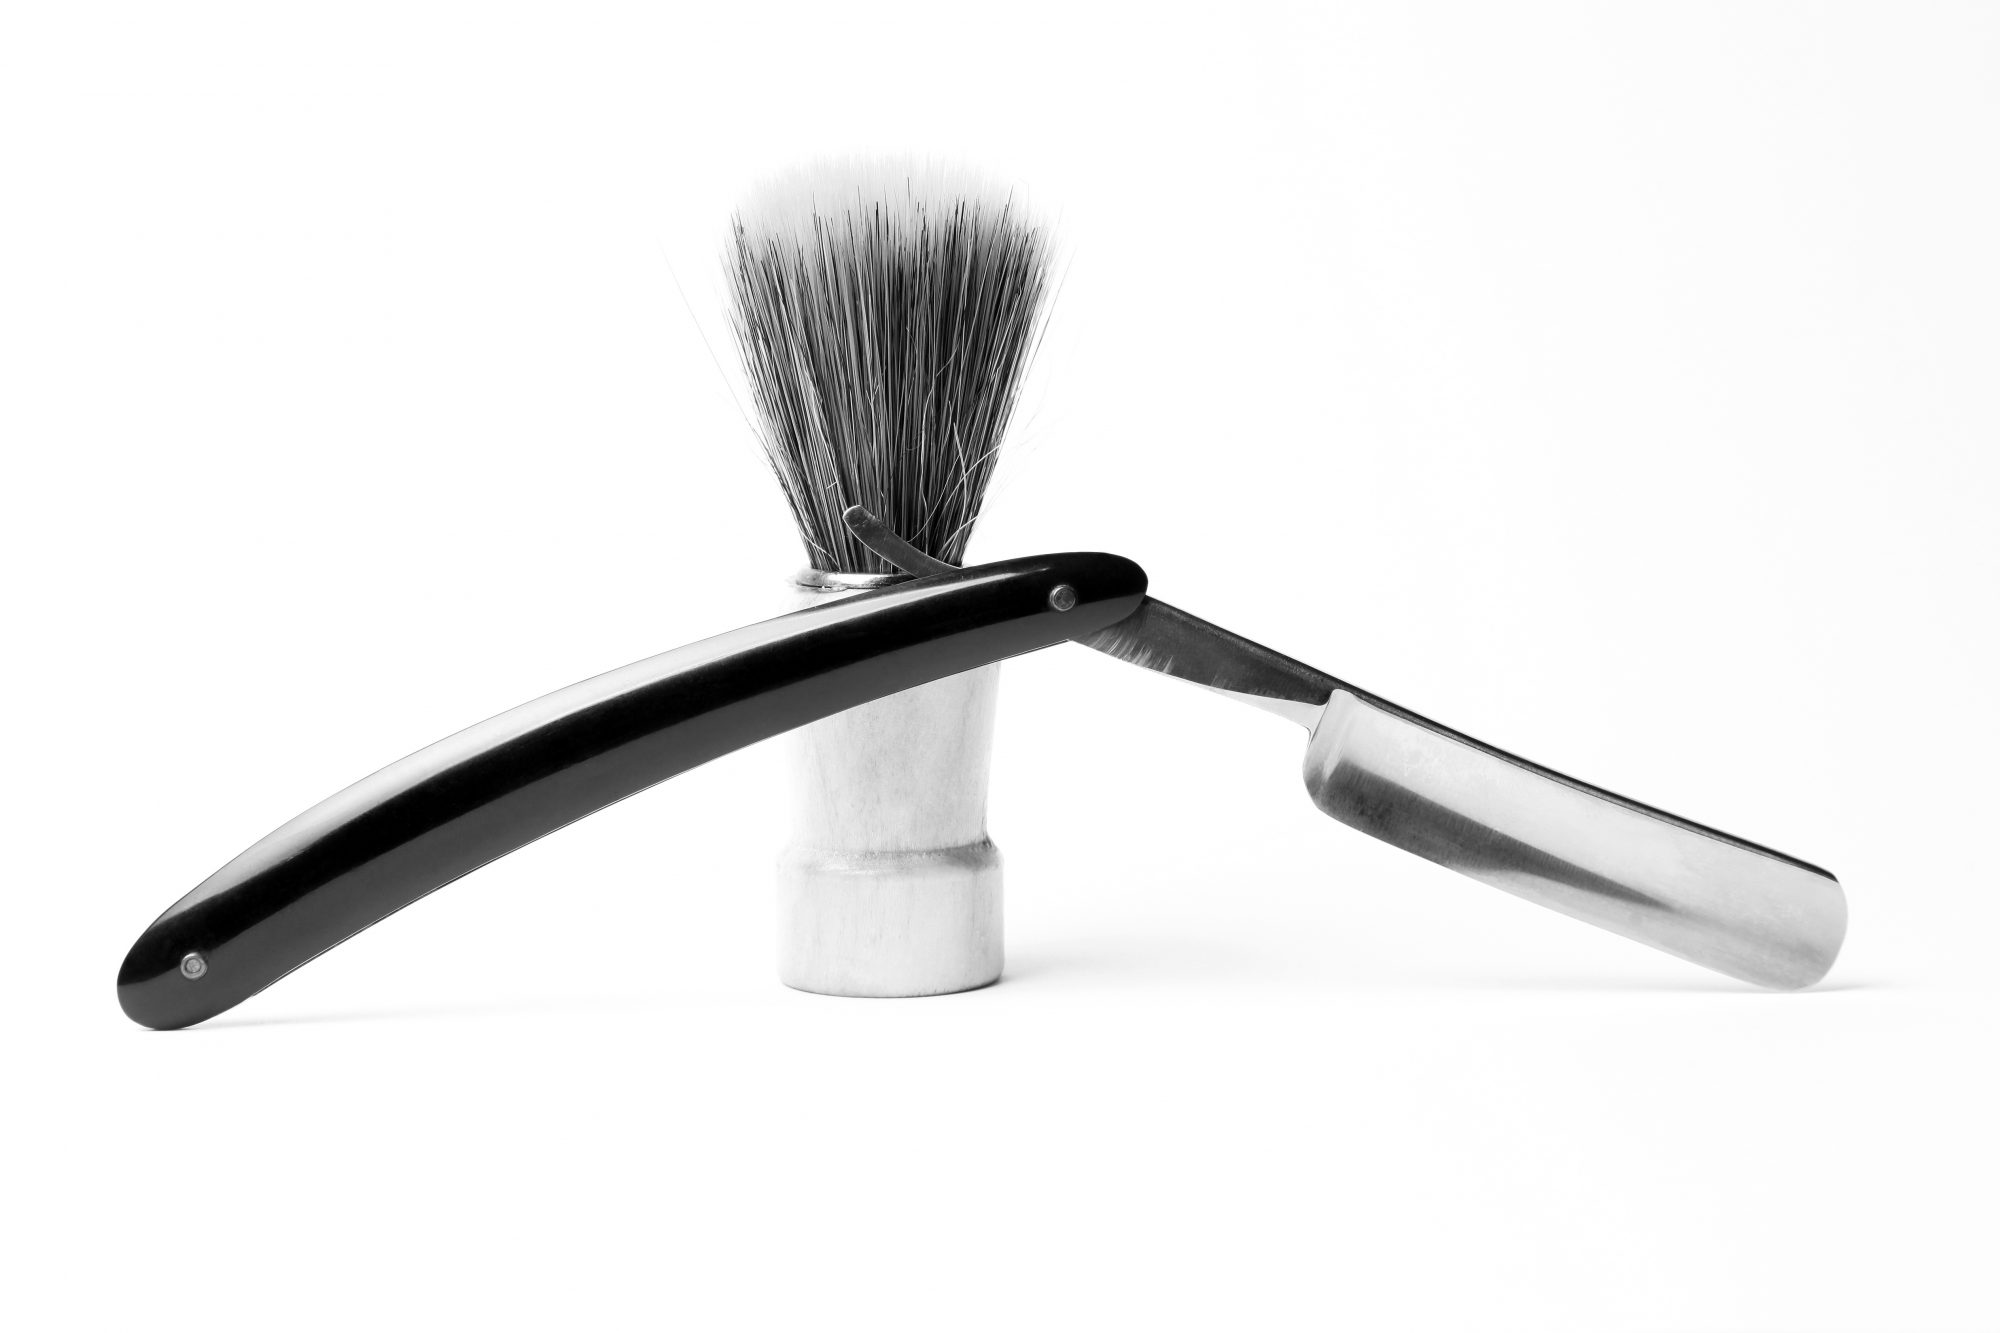 Straight razor and shaving brush